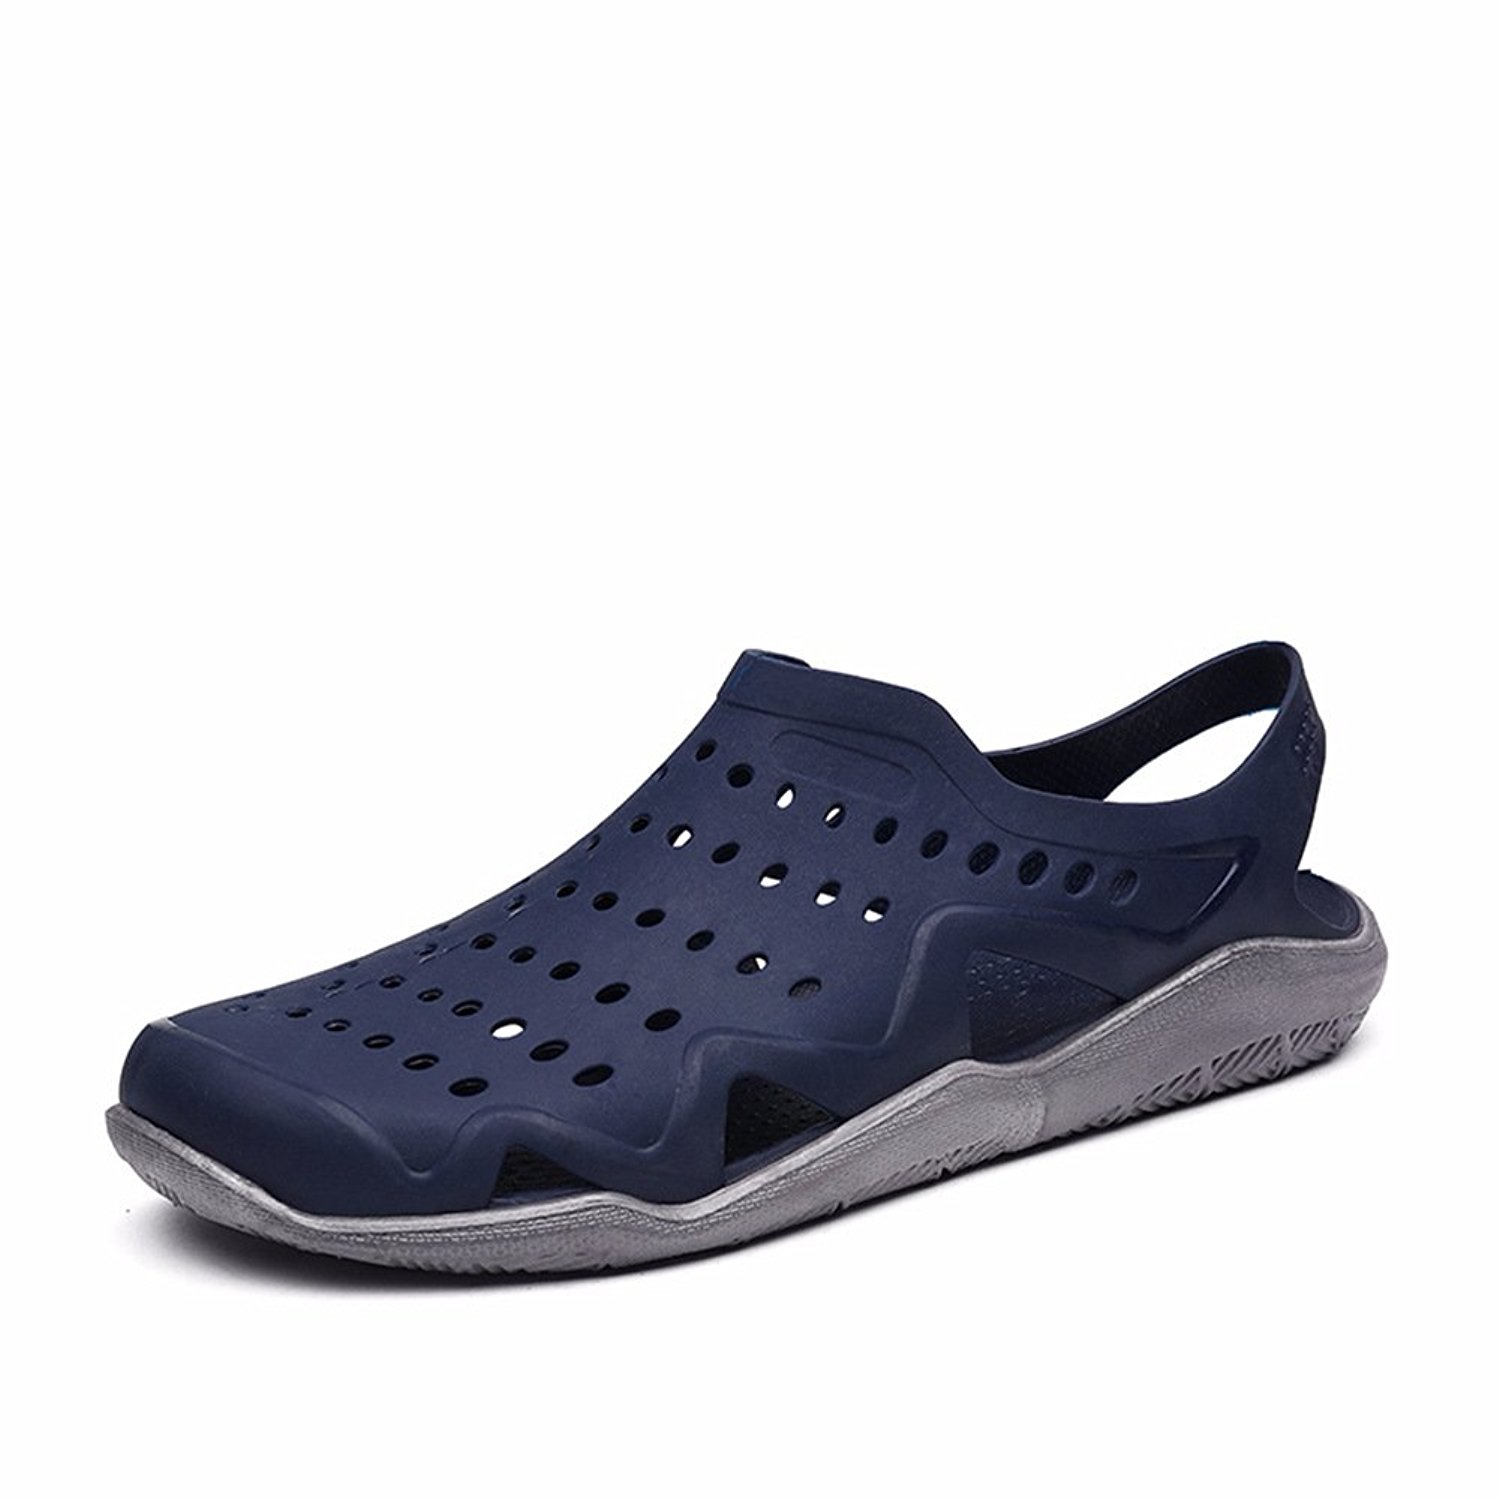 Sunny Holiday Mens Comfort Walking Water Shoes Pool Shower Saltwalter Sandals Outdoor Beach Aqua Walking Anti-Slip Clogs Shoes Blue/Grey EU41